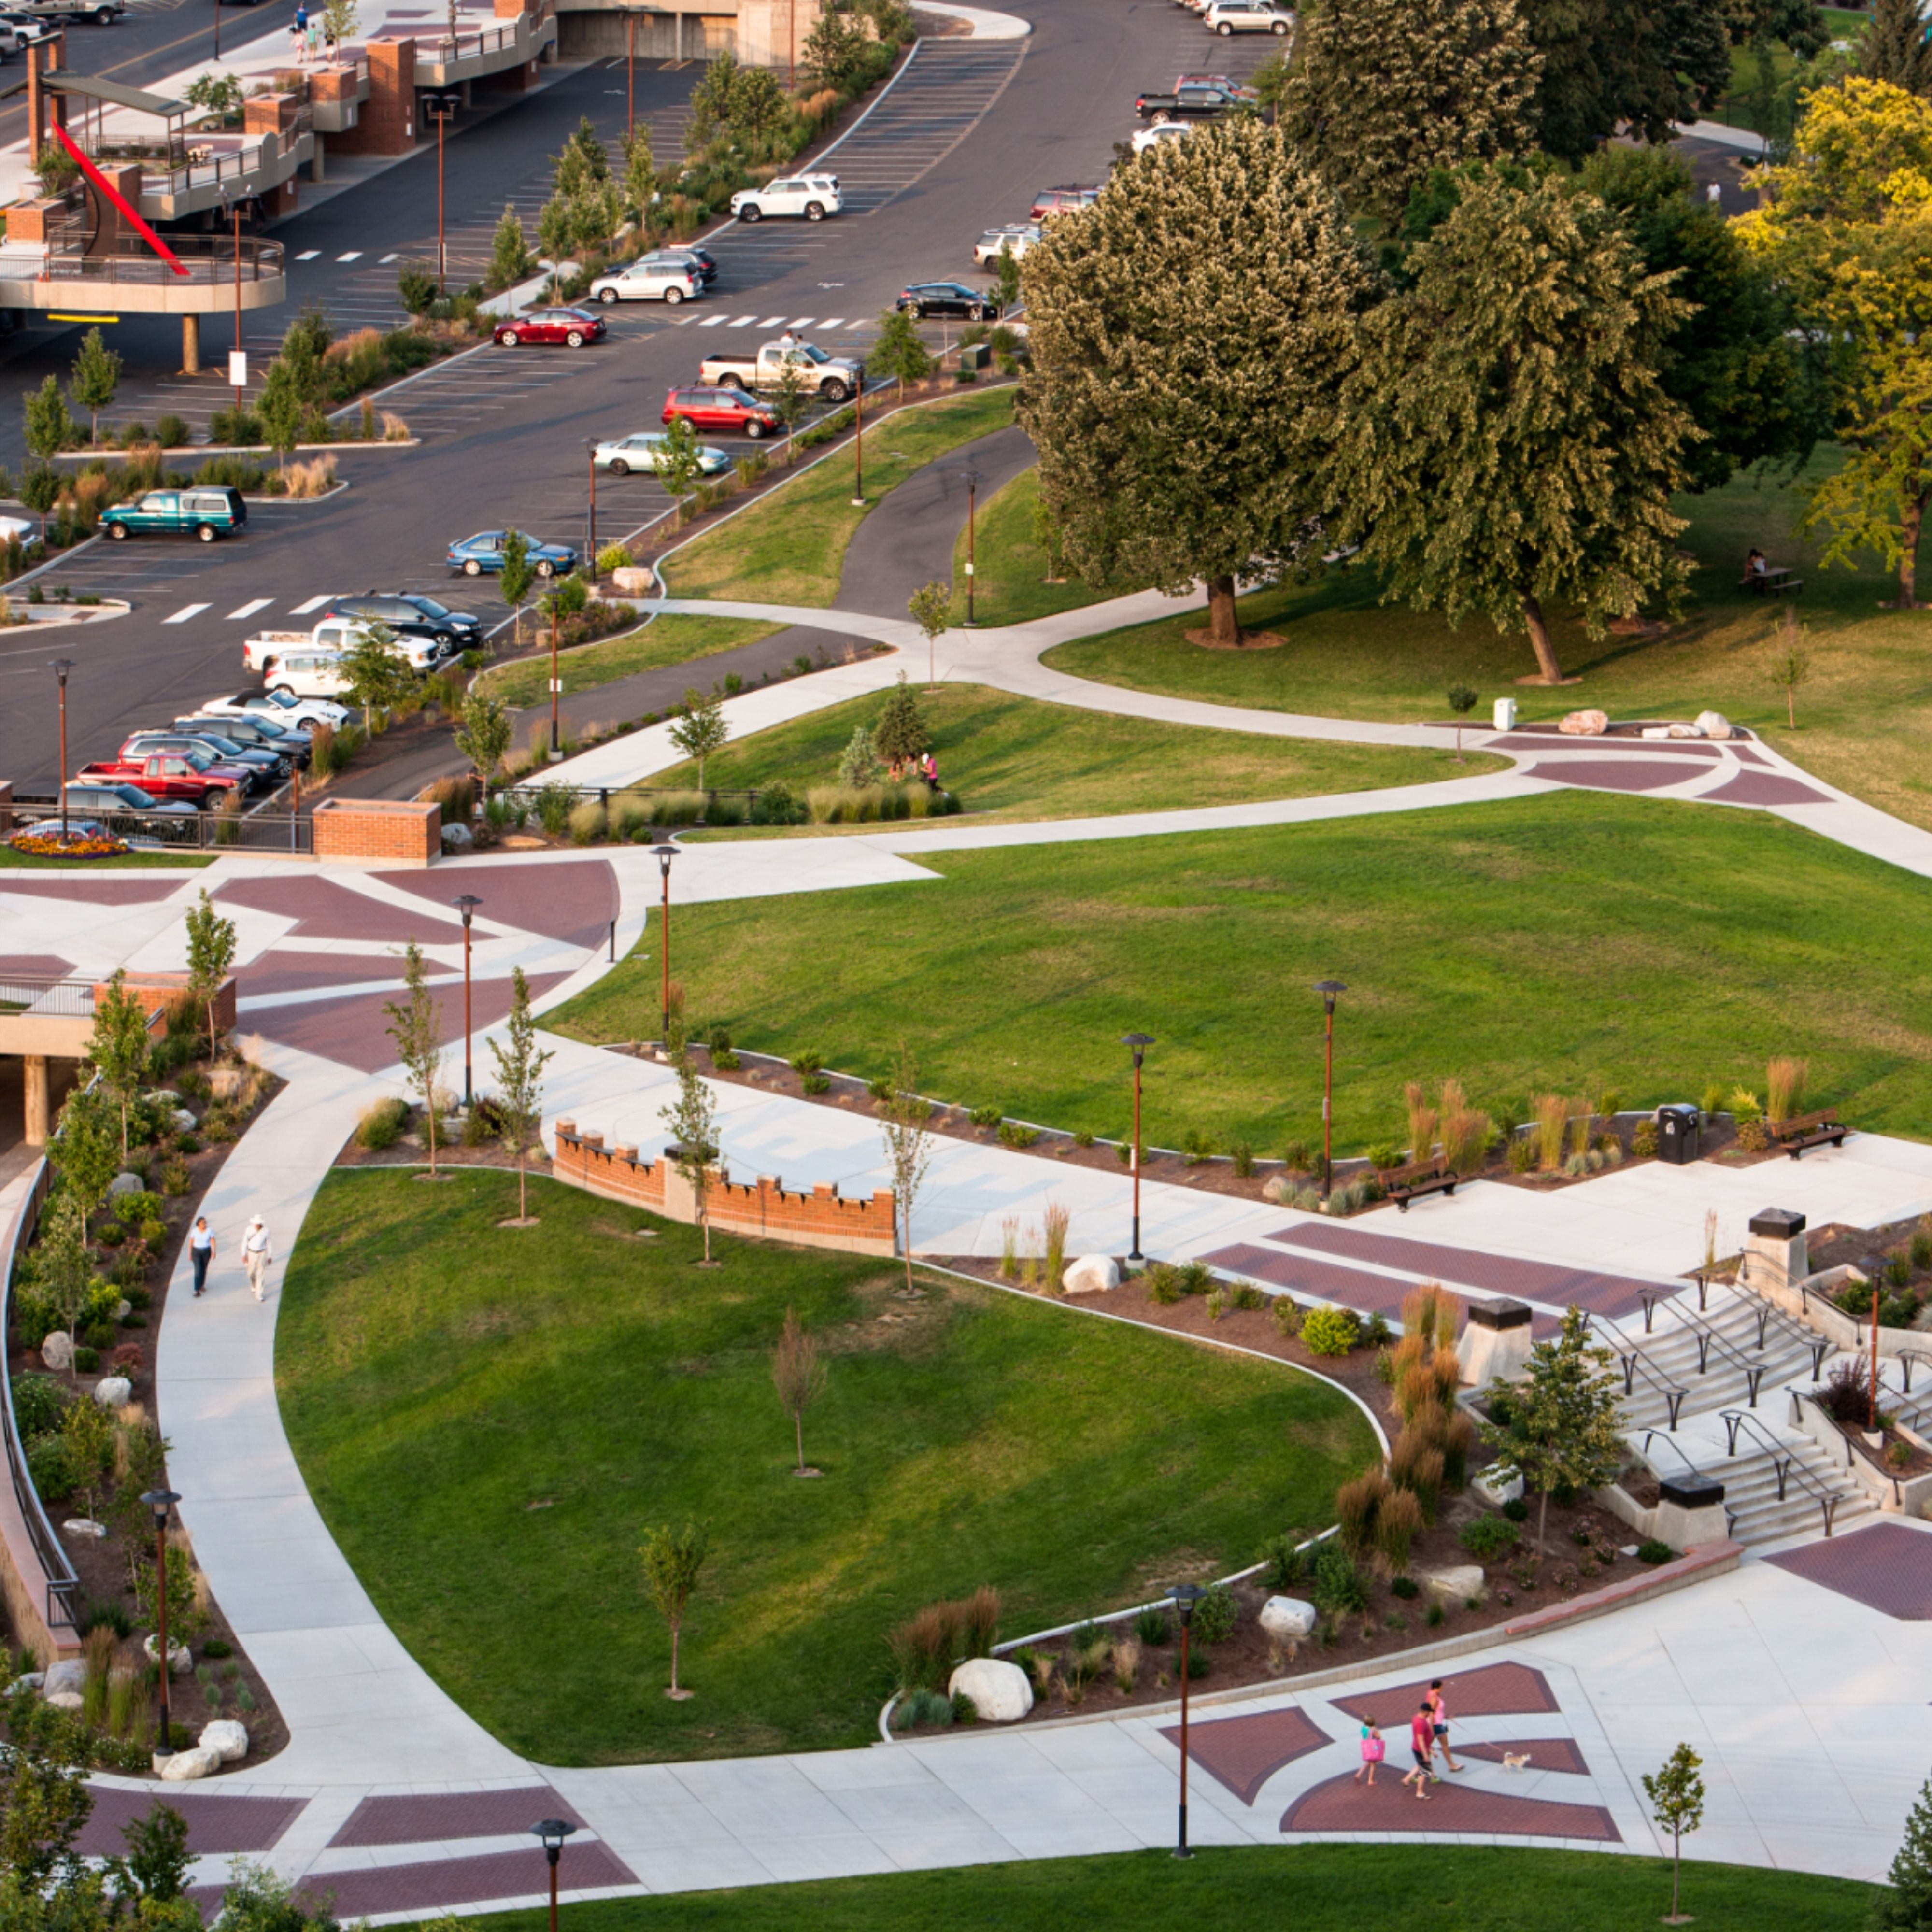 One of our favorite landscape architecture achievements – the McEuen Park Redevelopment for the City of Coeur d'Alene. The team's primary objective included creating a destination park and gathering space for the public while incorporating amenities and features to compliment the venue's spectacular waterfront setting on Lake Coeur d'Alene. What's that they say about location, location, location?   #BernardoWills #architects #architect #architecture #architecturephotography #landscapedesign